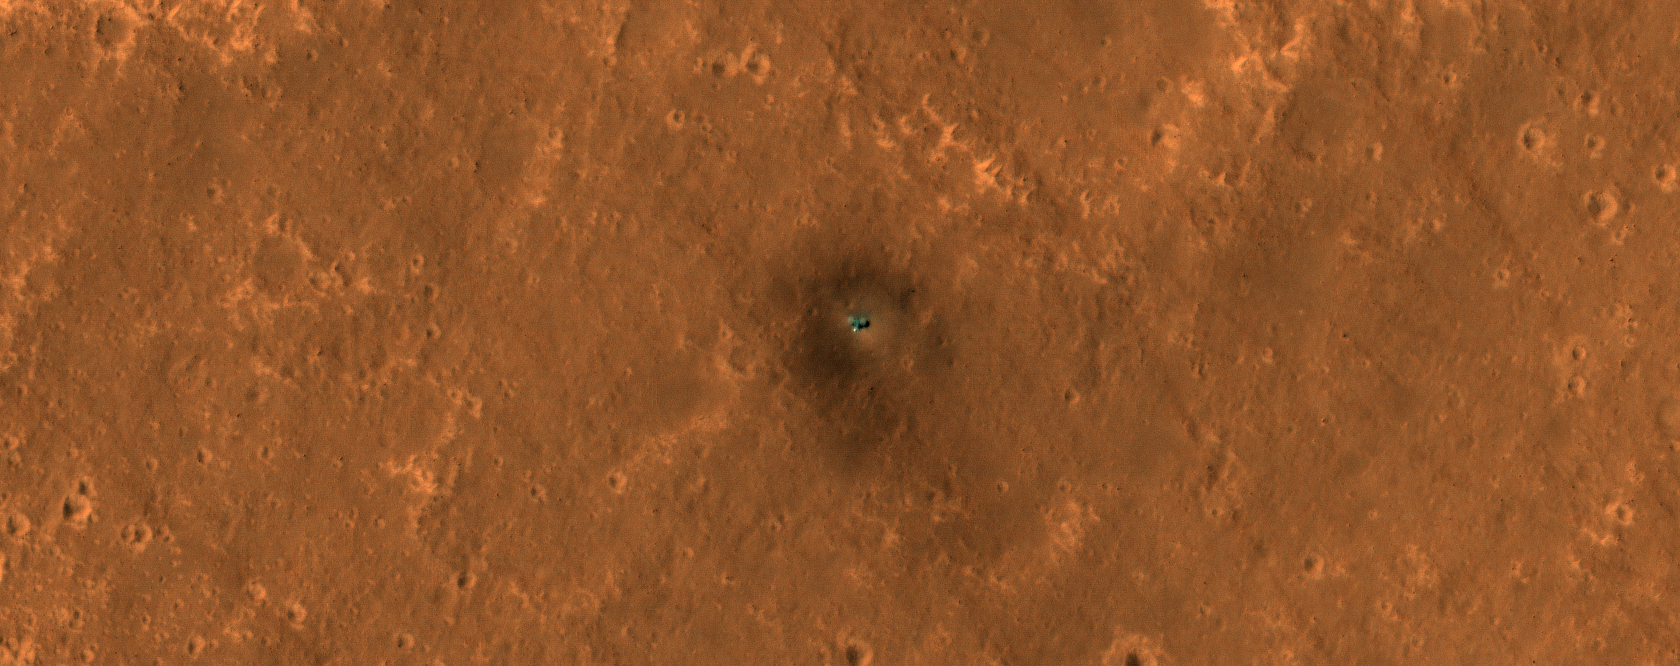 The Best HiRISE Image of the InSight Lander